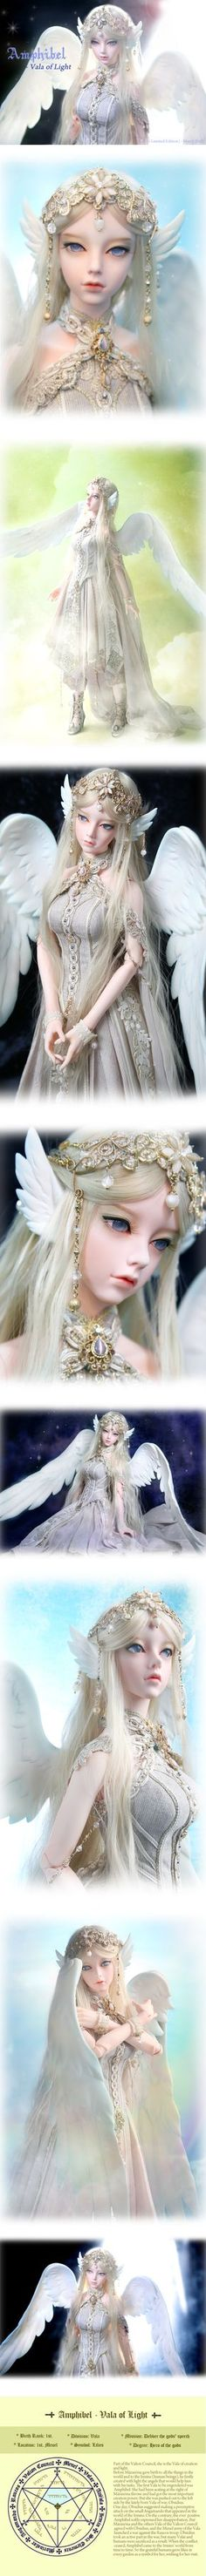 Oh, I LOVE this doll. She might be my new dream doll!